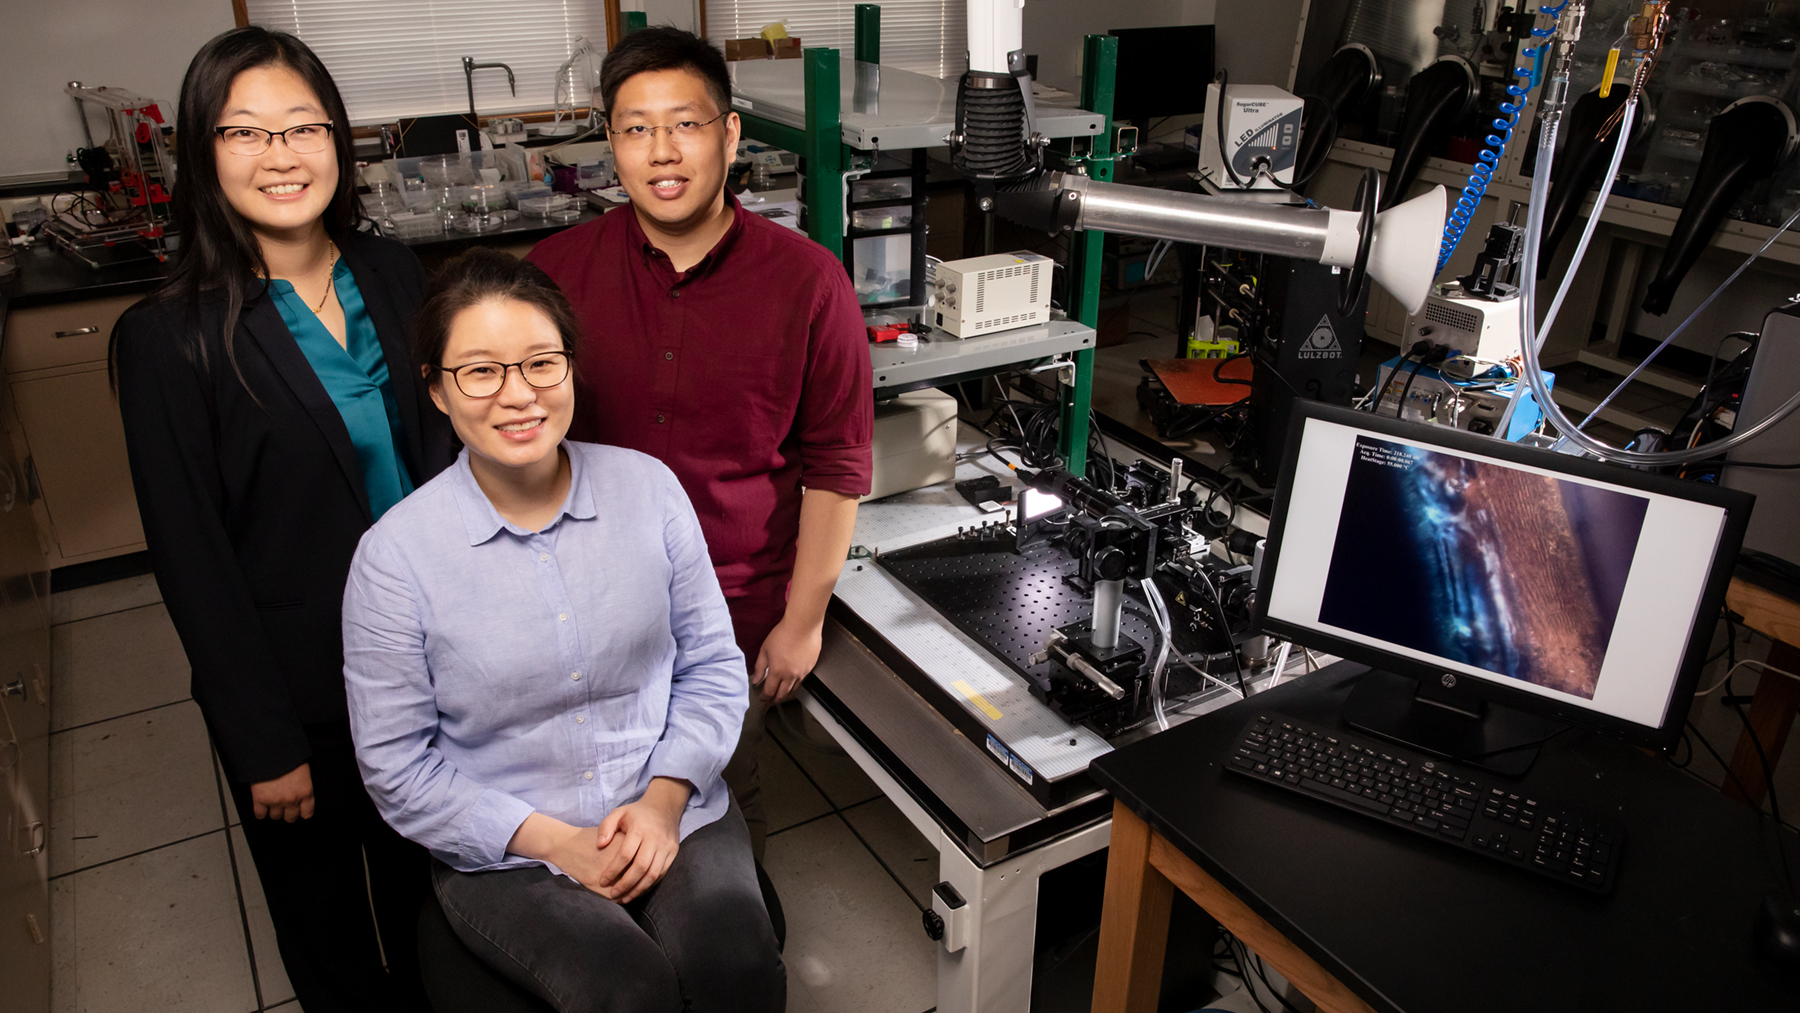 Professor Ying Diao, left, postdoctoral researcher Kyung Sun Park, seated, and graduate student Justin Kwok have found that twisted polymers can be flattened via the printing process to make them better at conducting electricity. Photo by Leslie B. Stauffer